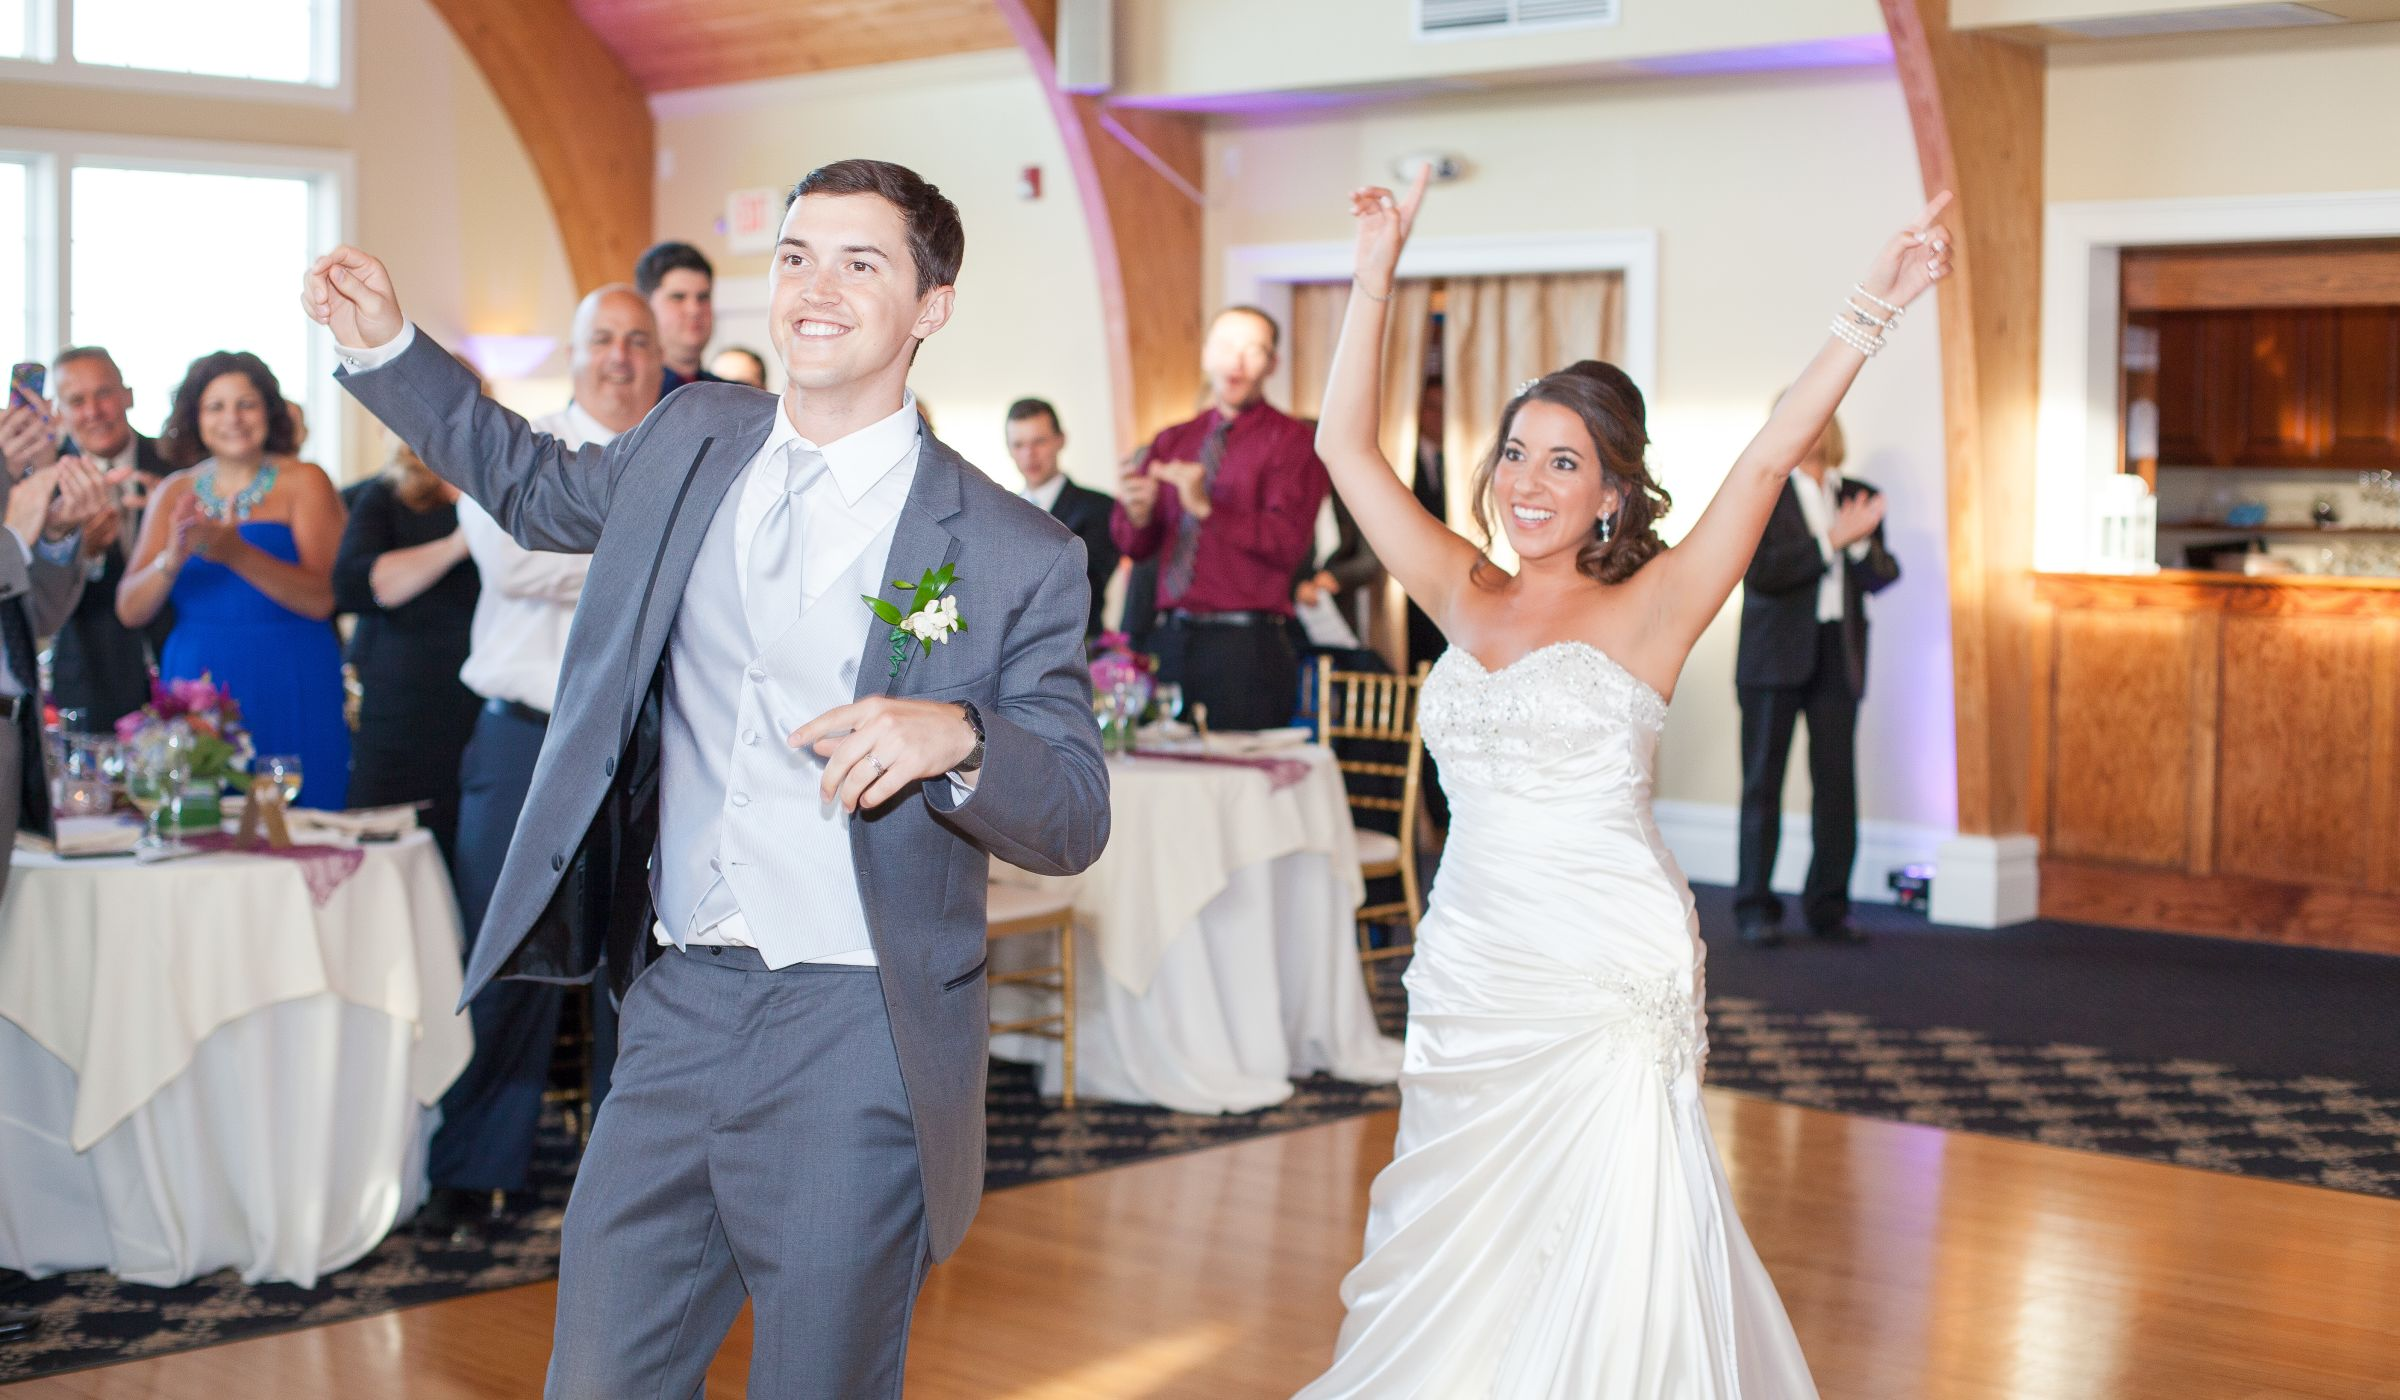 Reception Grand Entrance Song Ideas From The Experts